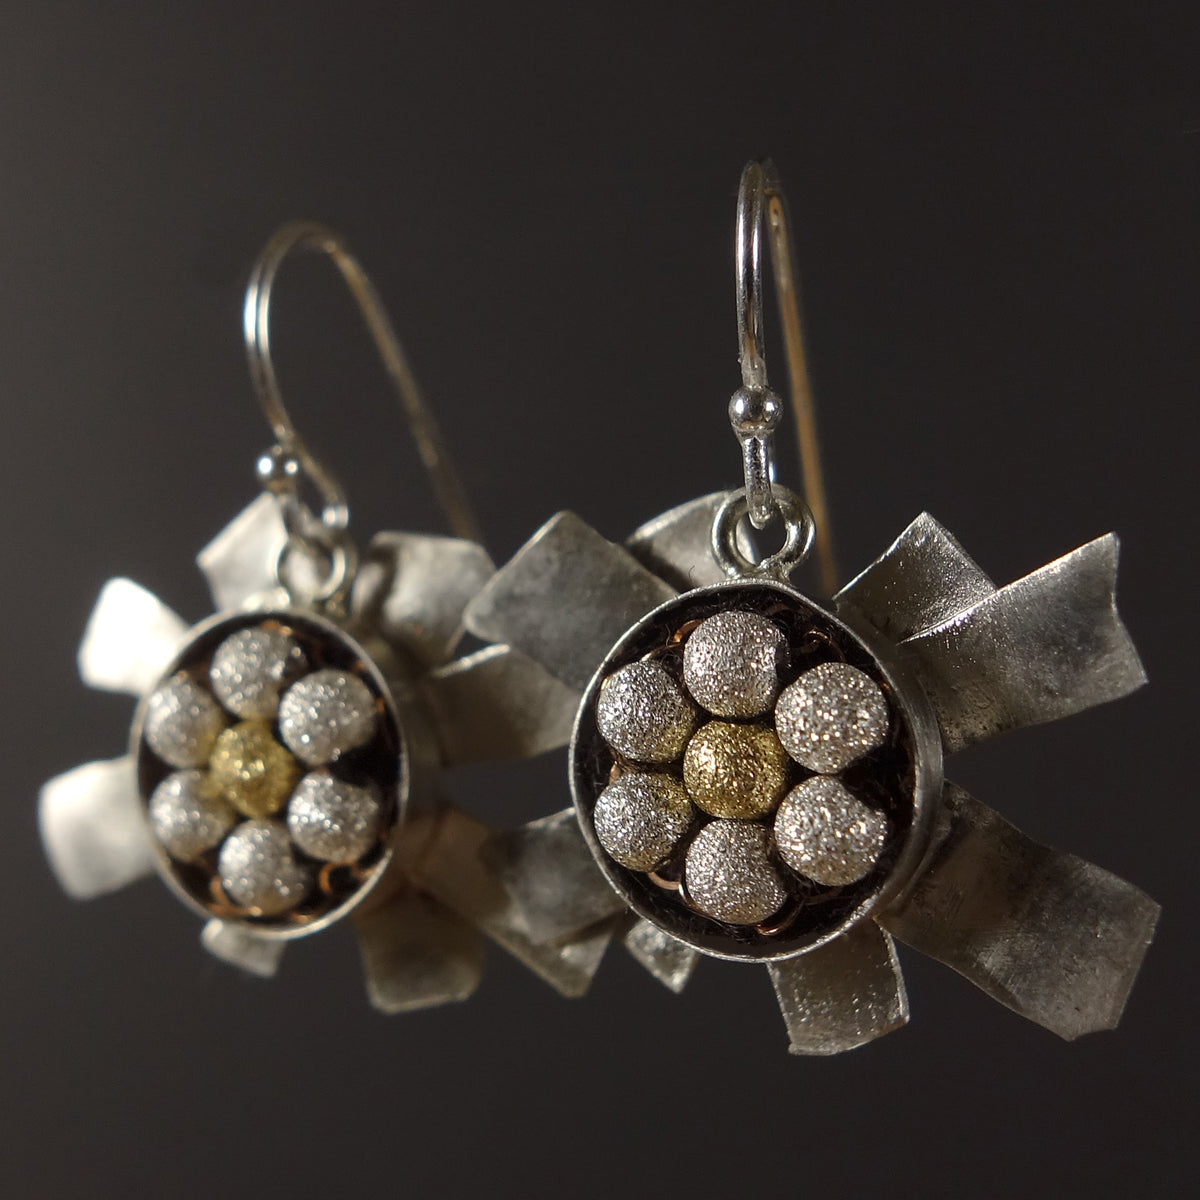 I say it's all right, little darling: hand hammered silver mosaic earring